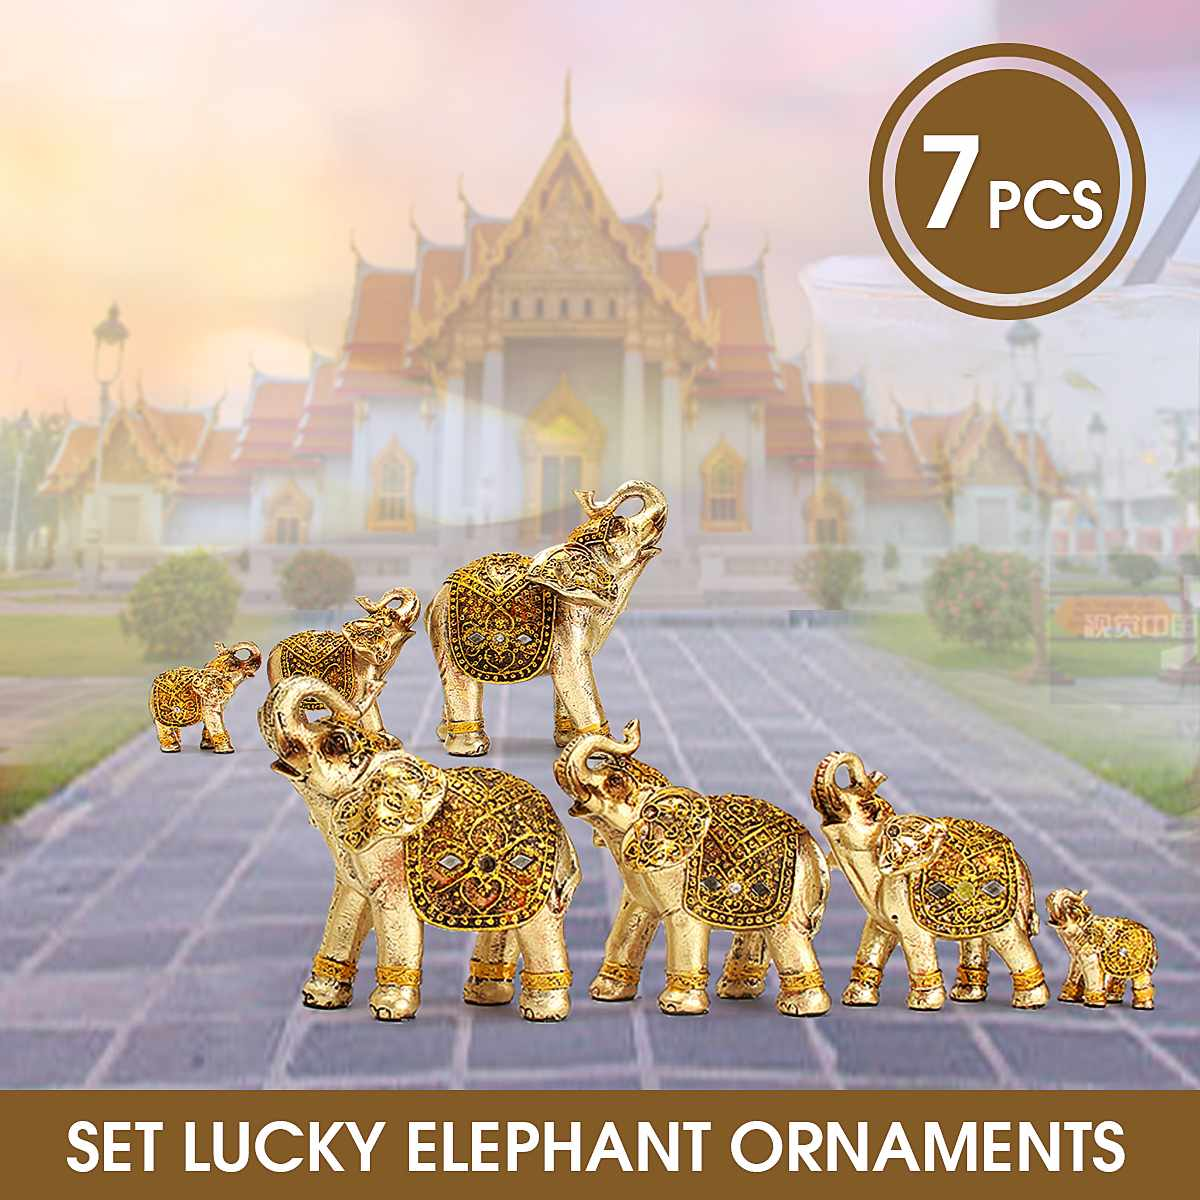 Mini Set Feng Shui Elegant Elephant Trunk Statue Lucky Wealth Figurine Crafts Ornaments Gift For Home Office Desktop Decoration